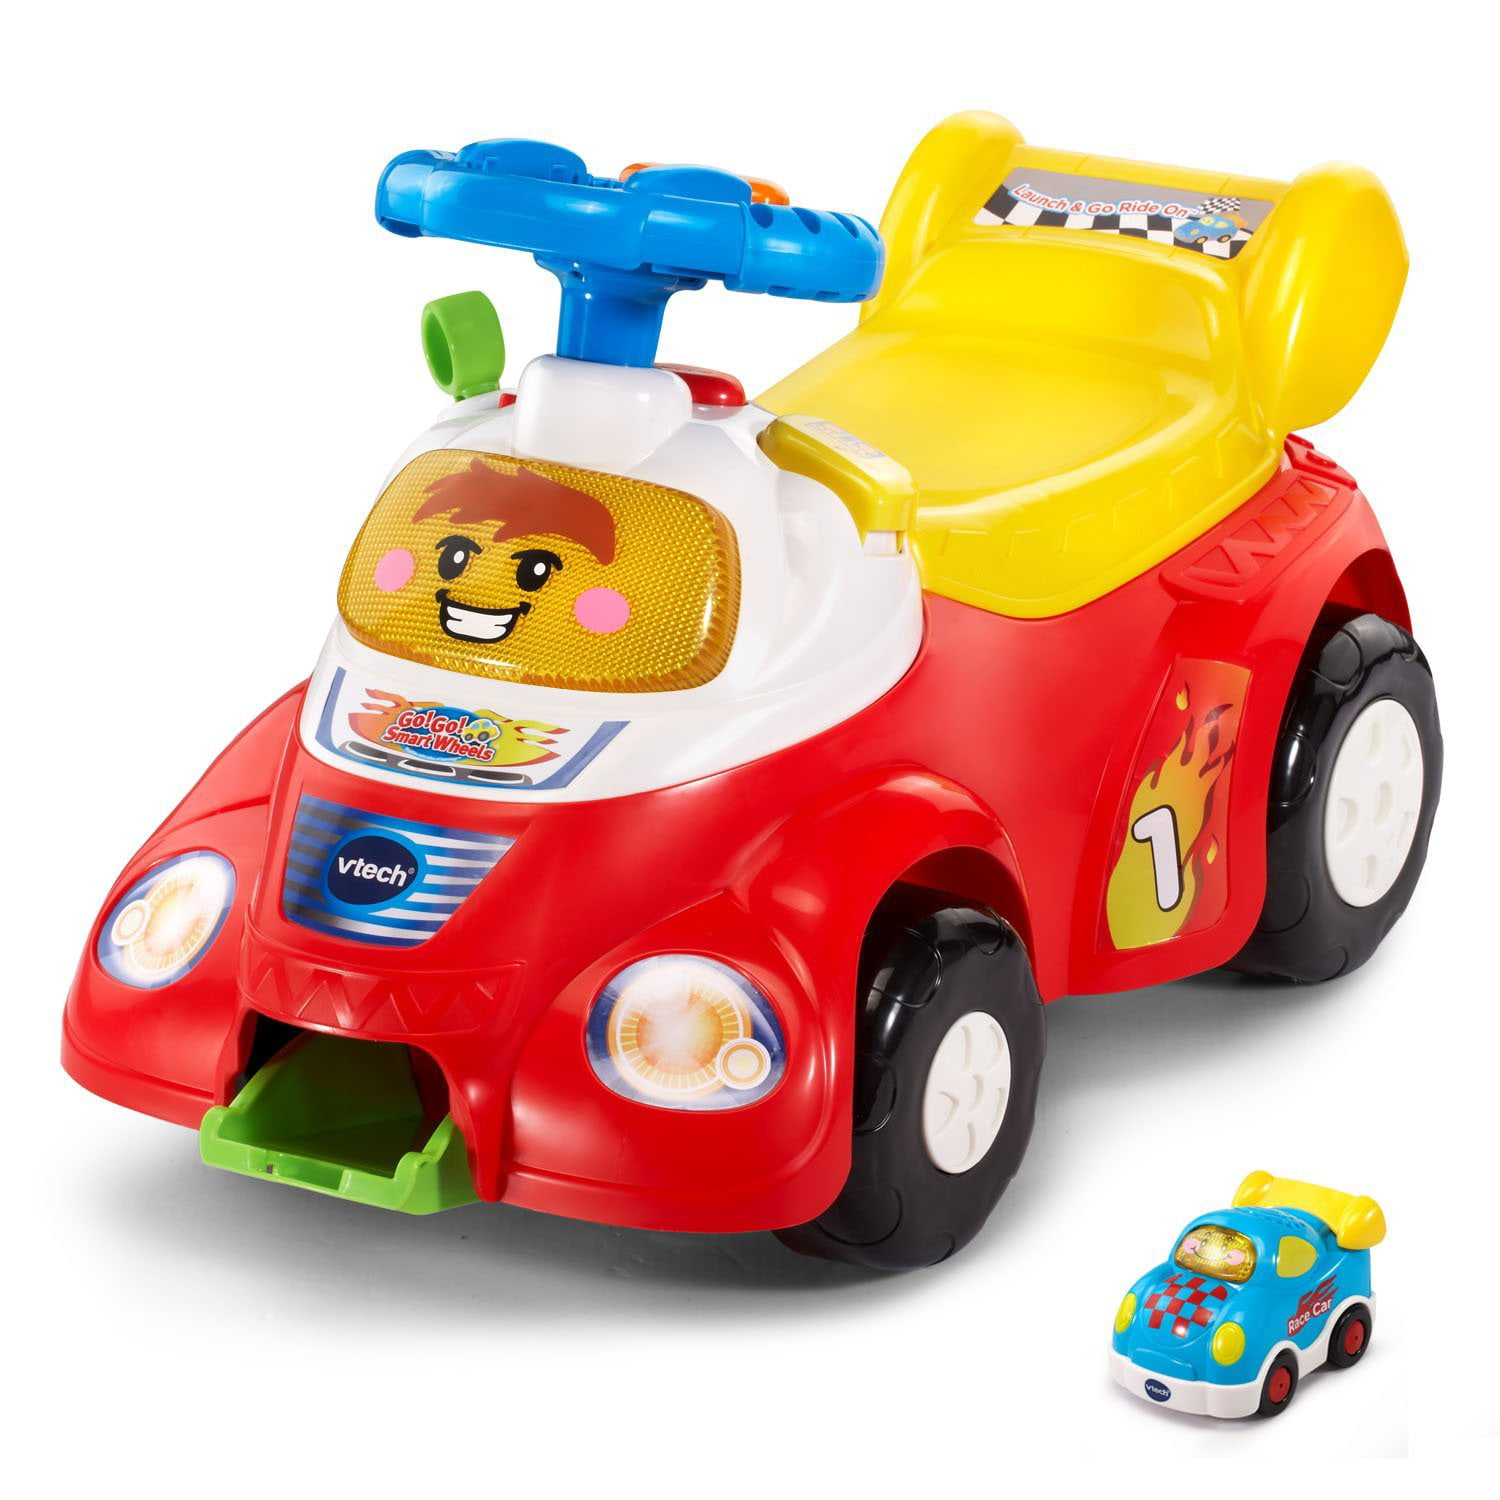 VTech Go! Go! Smart Wheels Launch and Go Ride On (Frustration Free Packaging) by